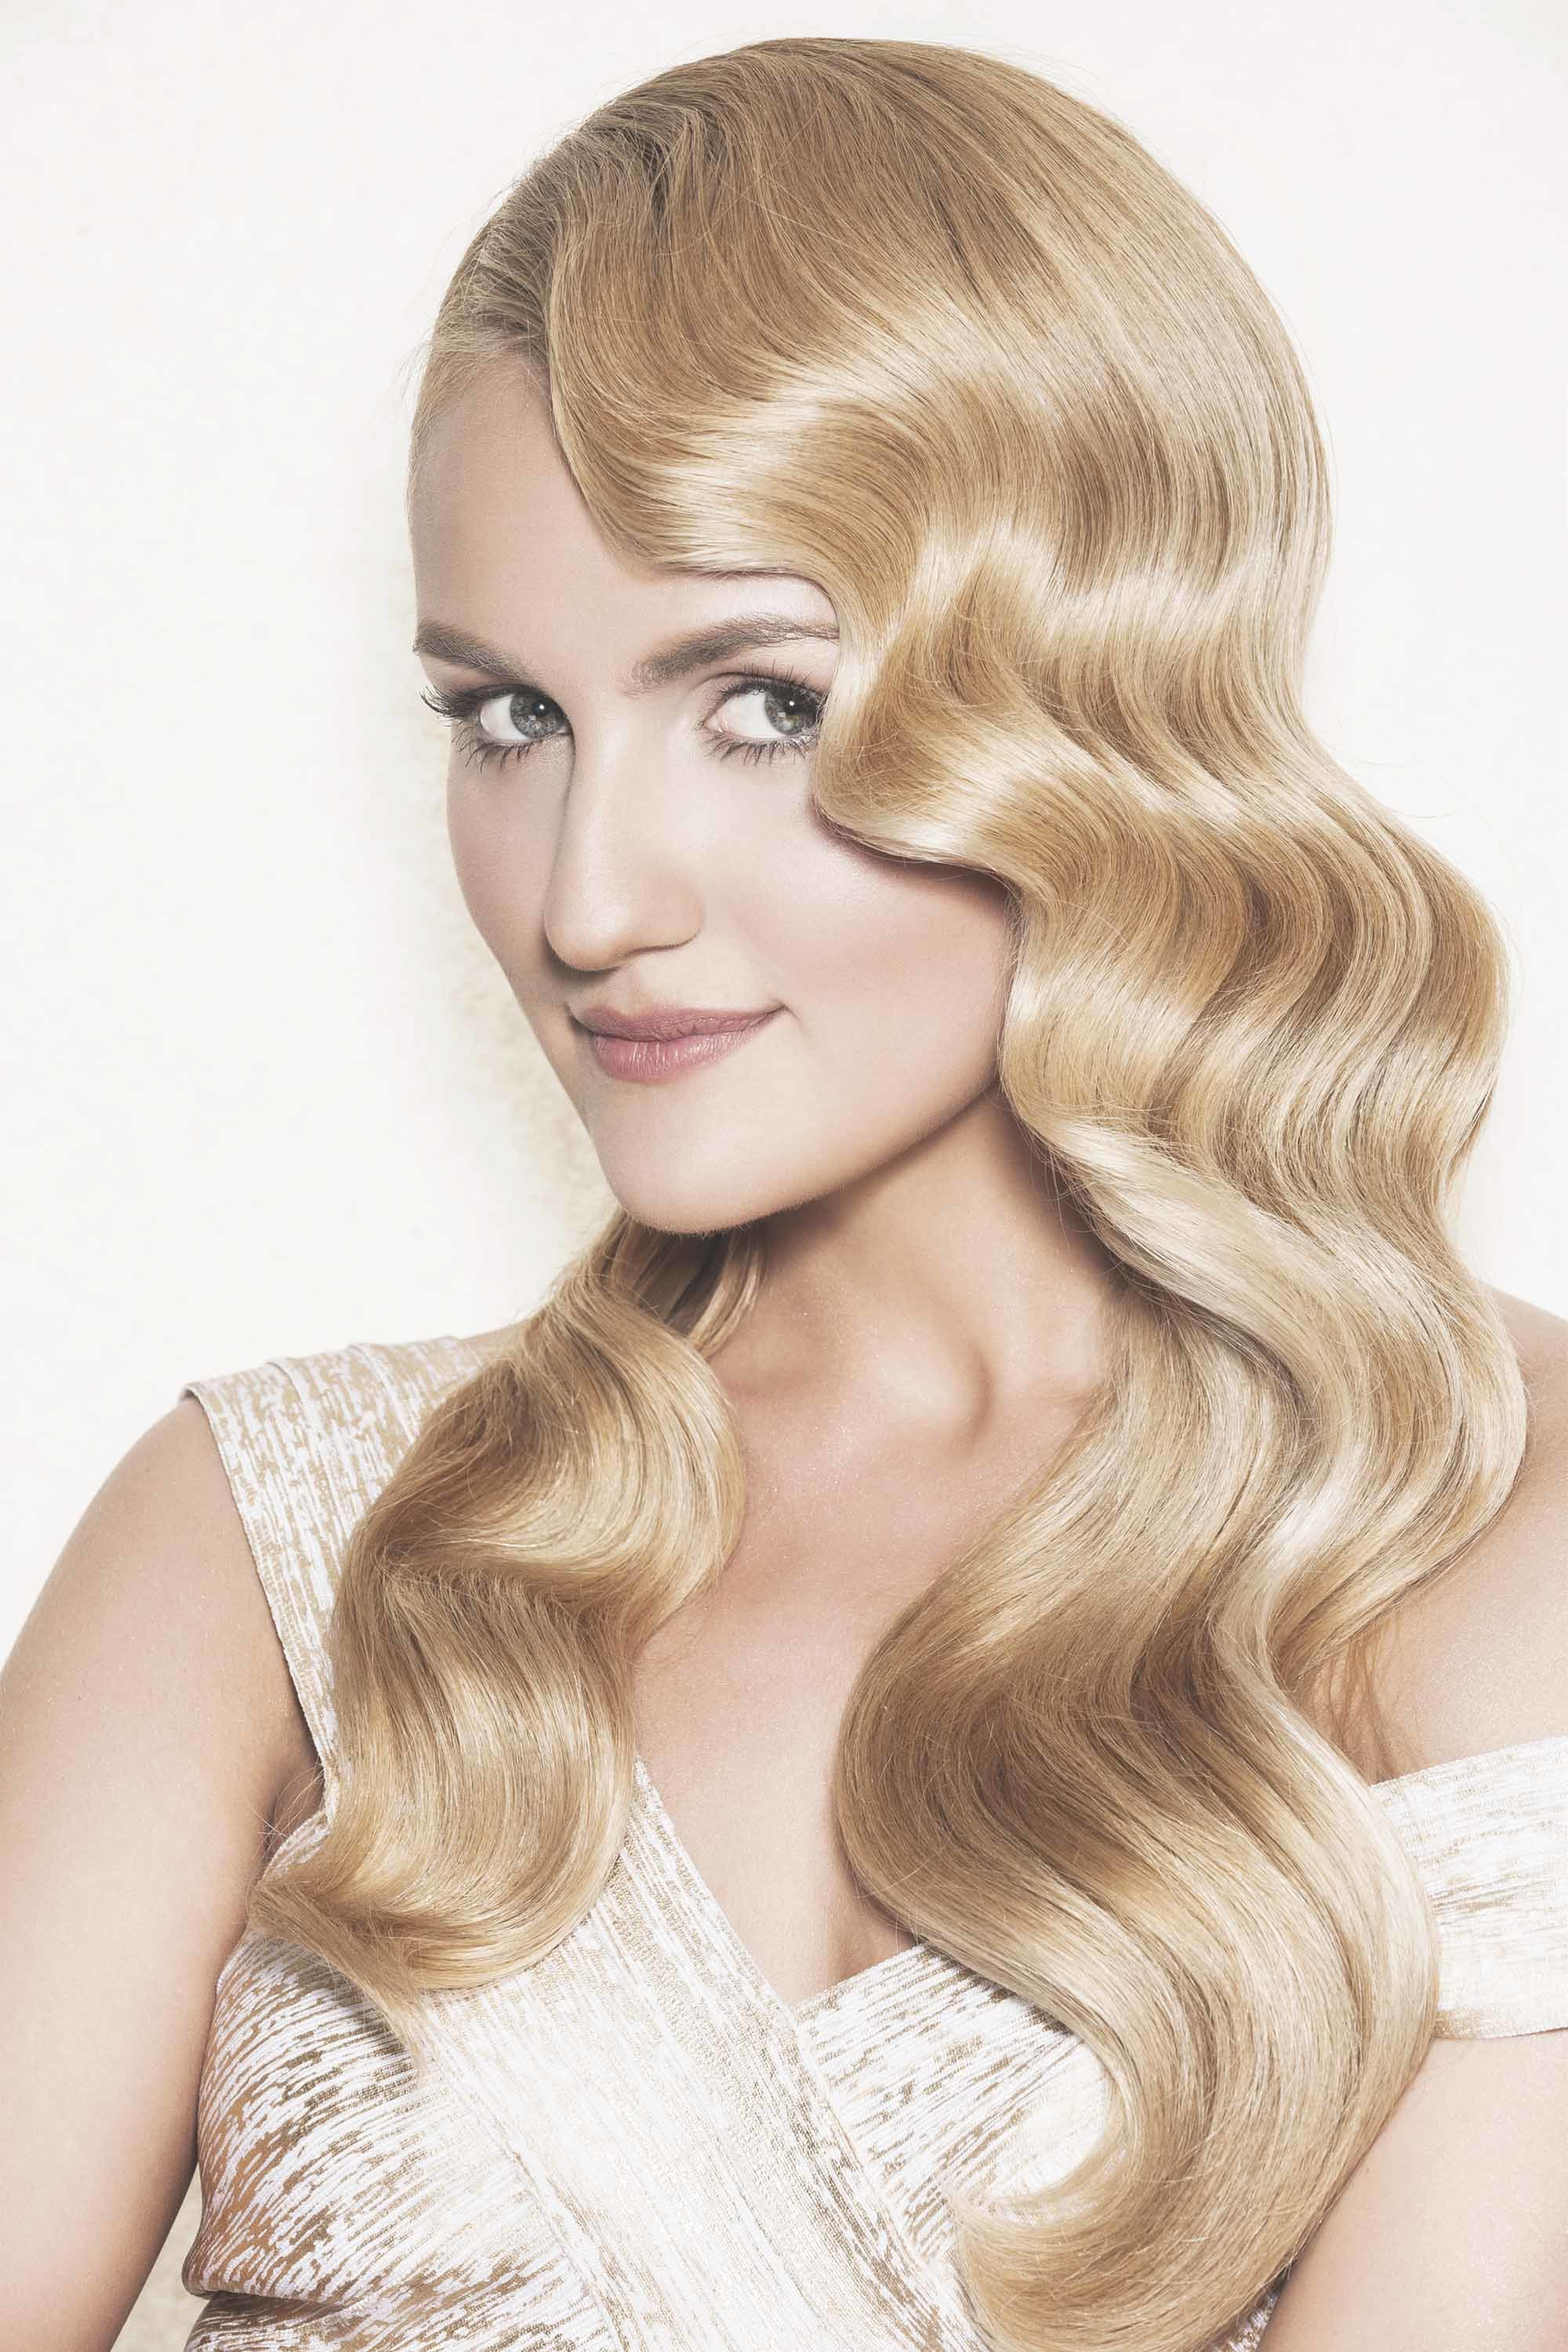 Free 11 Great Gatsby Inspired Hair Ideas For Halloween And Wallpaper